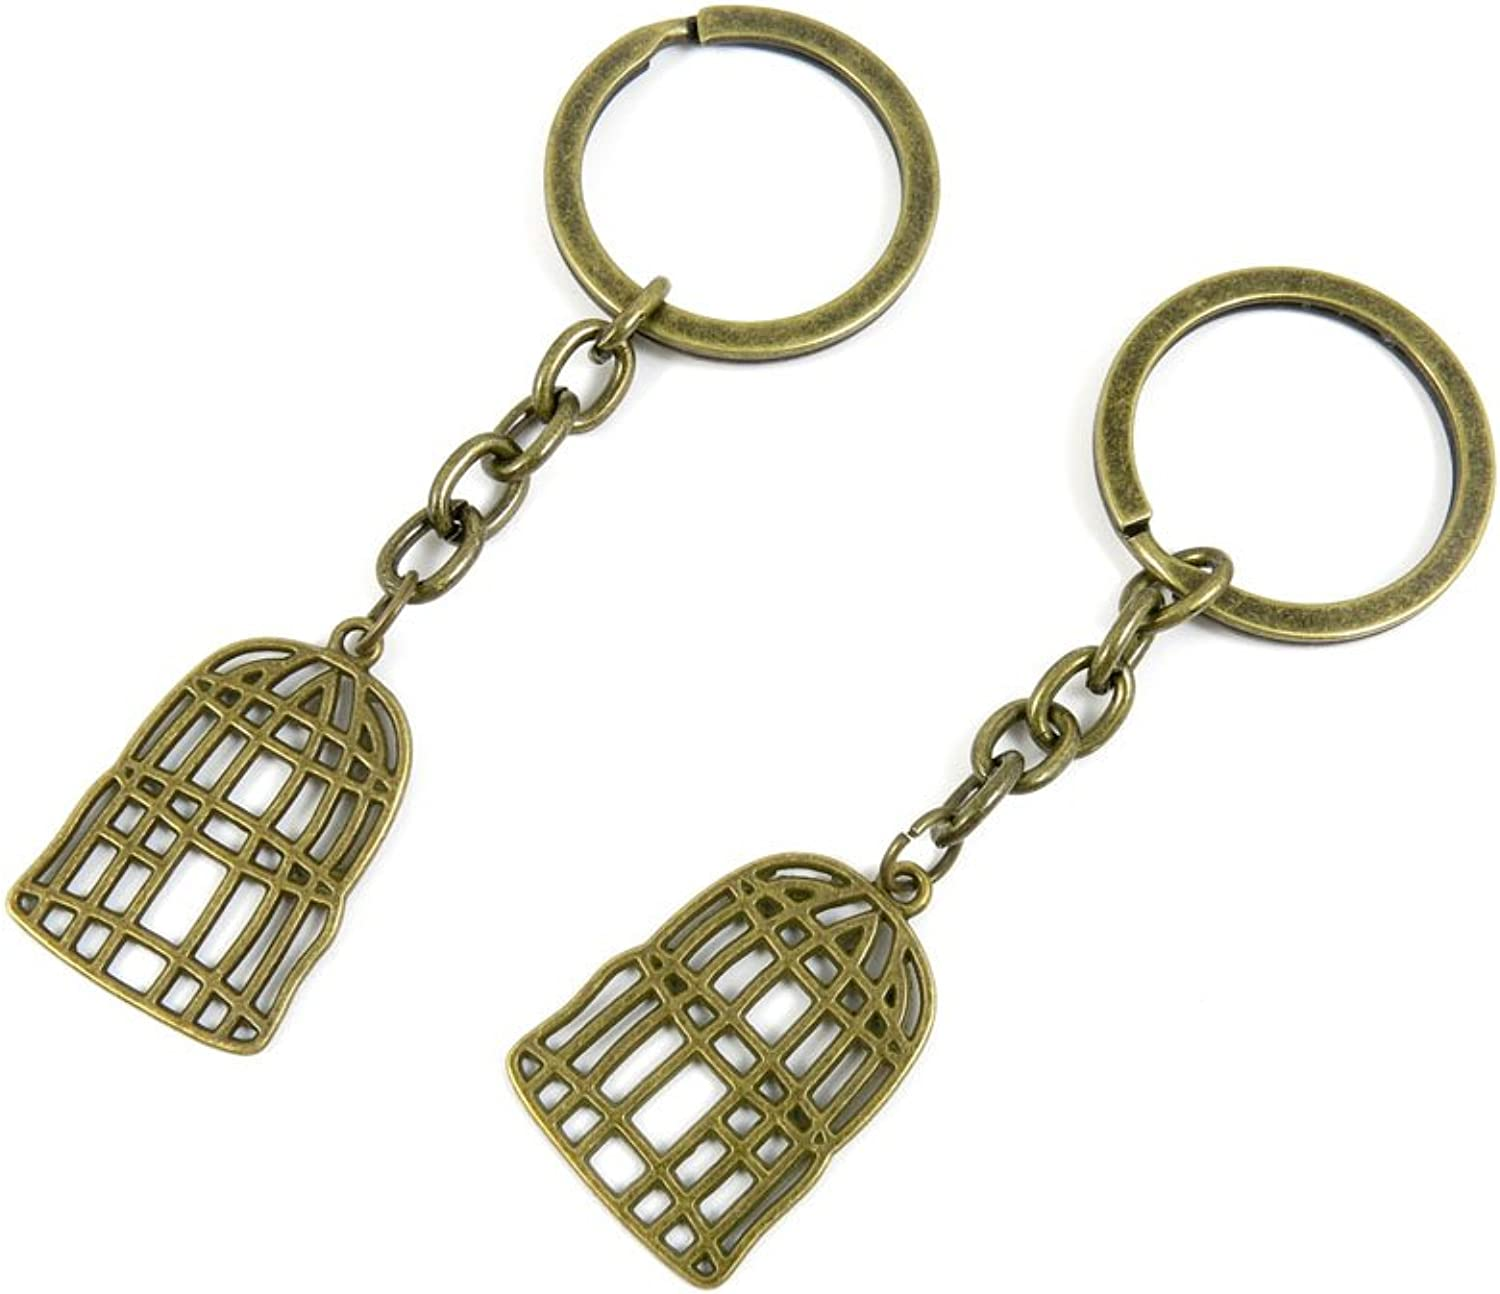 150 Pieces Fashion Jewelry Keyring Keychain Door Car Key Tag Ring Chain Supplier Supply Wholesale Bulk Lots C6LN1 Bird Cage Birdcage